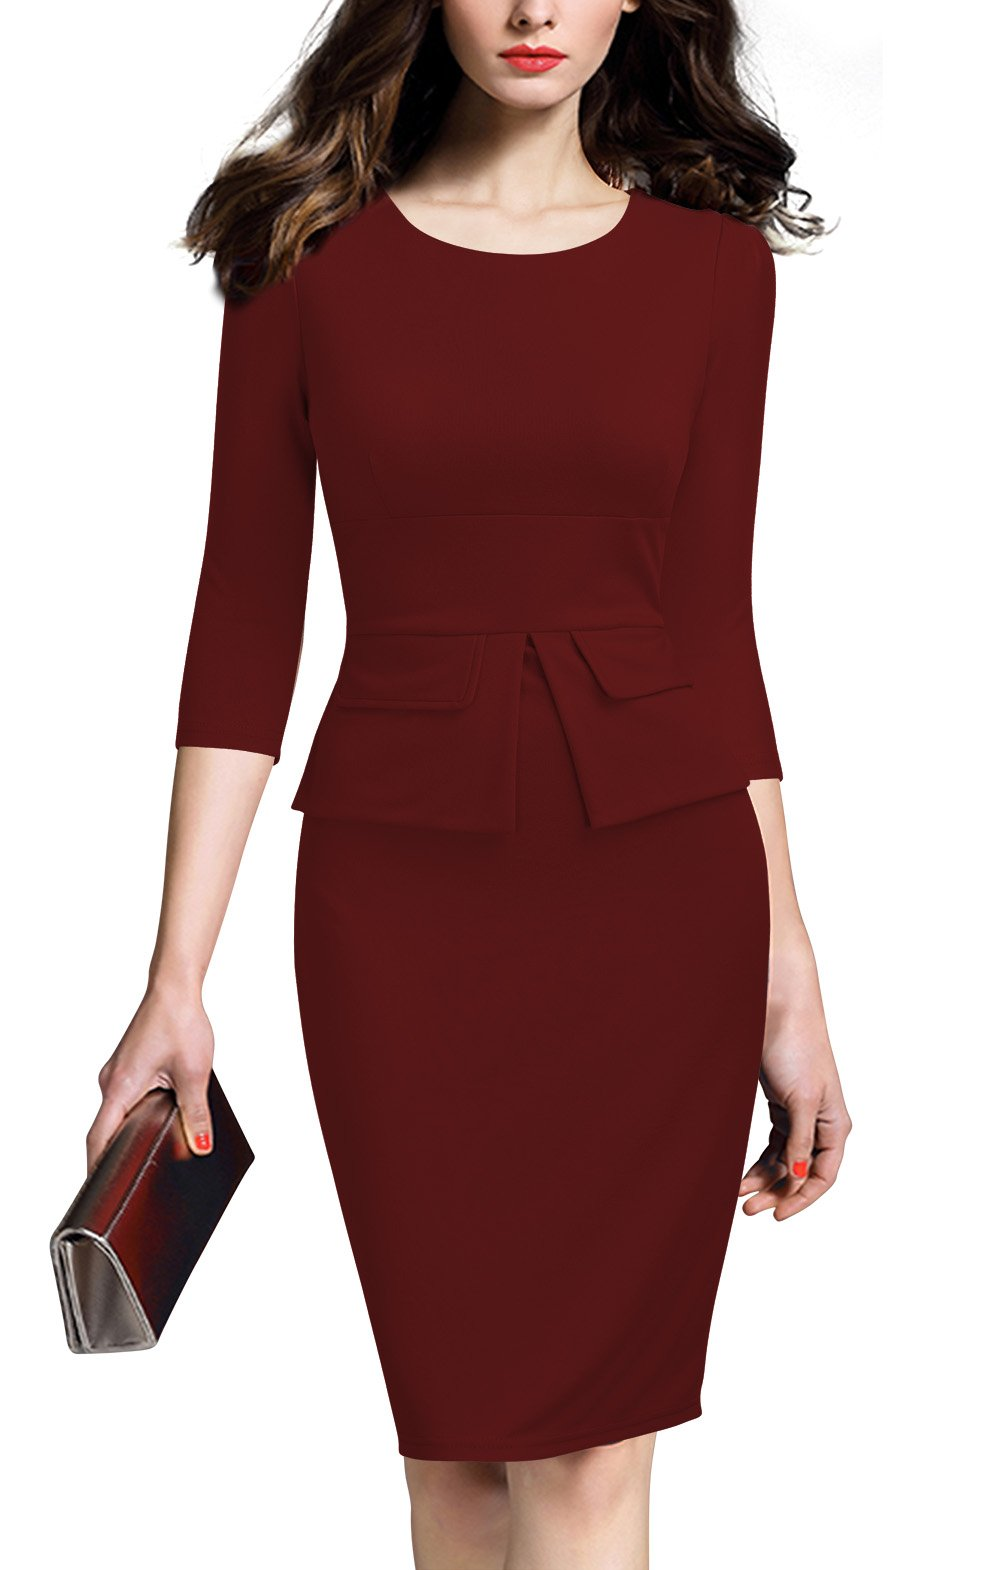 REPHYLLIS Women Colorblock Wear to Work Business Bodycon One-Piece Dress L Burgundy